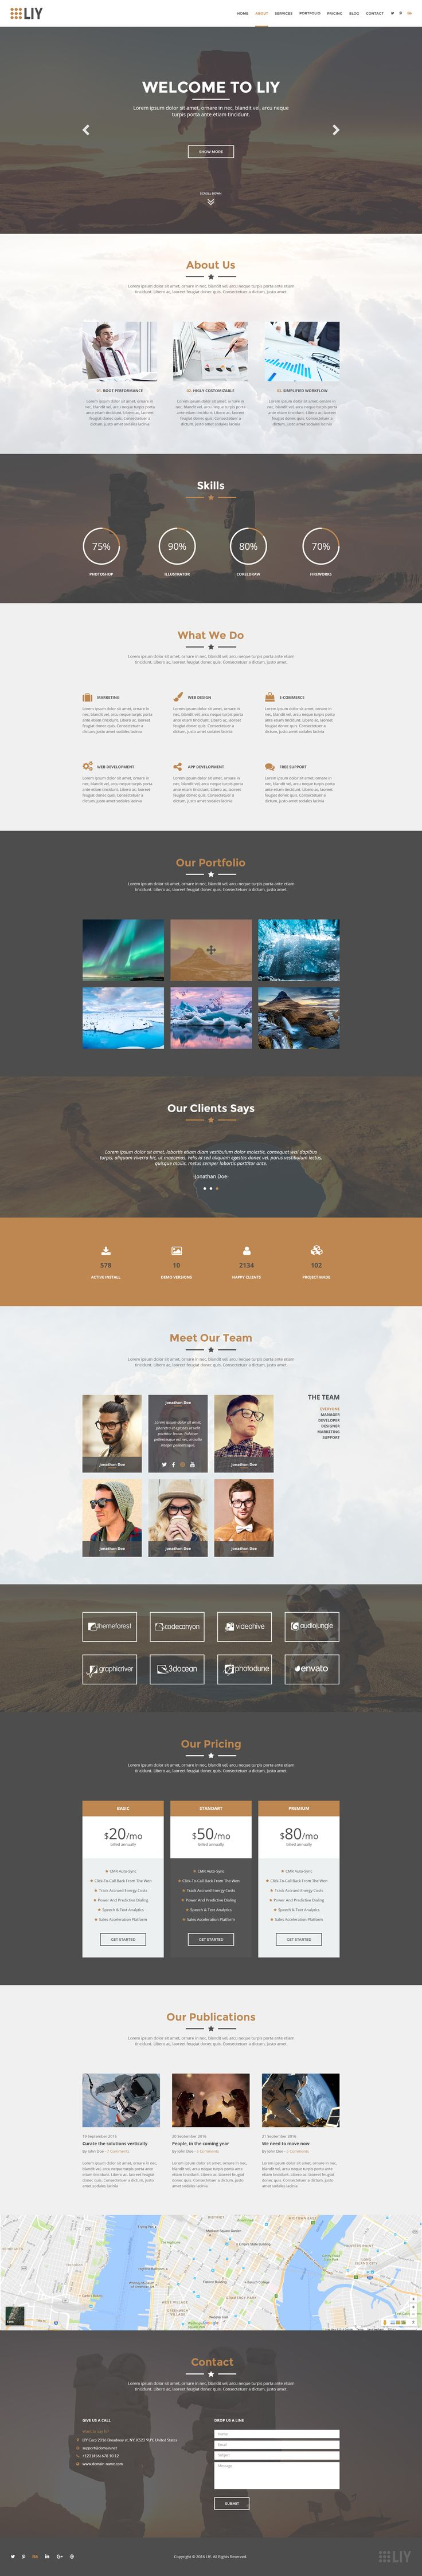 8195 template - 160 Best Webpage Templates Logo Design Images On Pinterest Web Layout Web Design Layouts And Website Designs